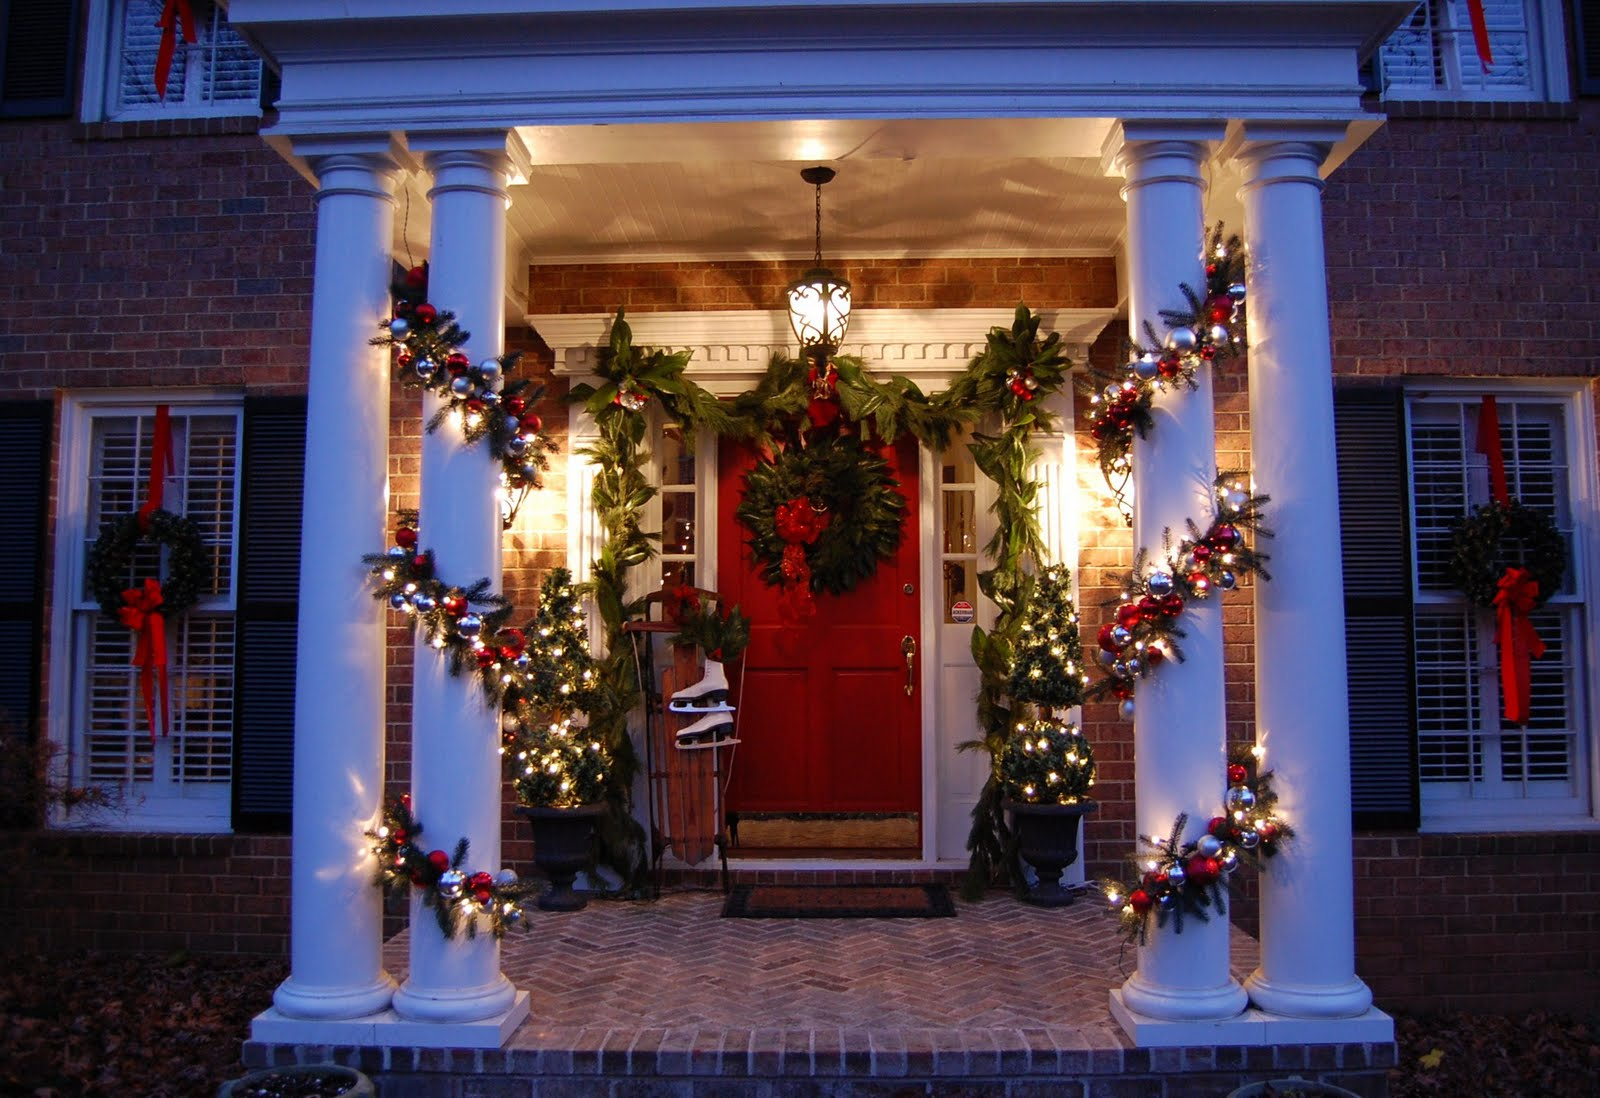 How To Decorate Outdoor Christmas Garland - Decorating for christmas with magnolia and pine